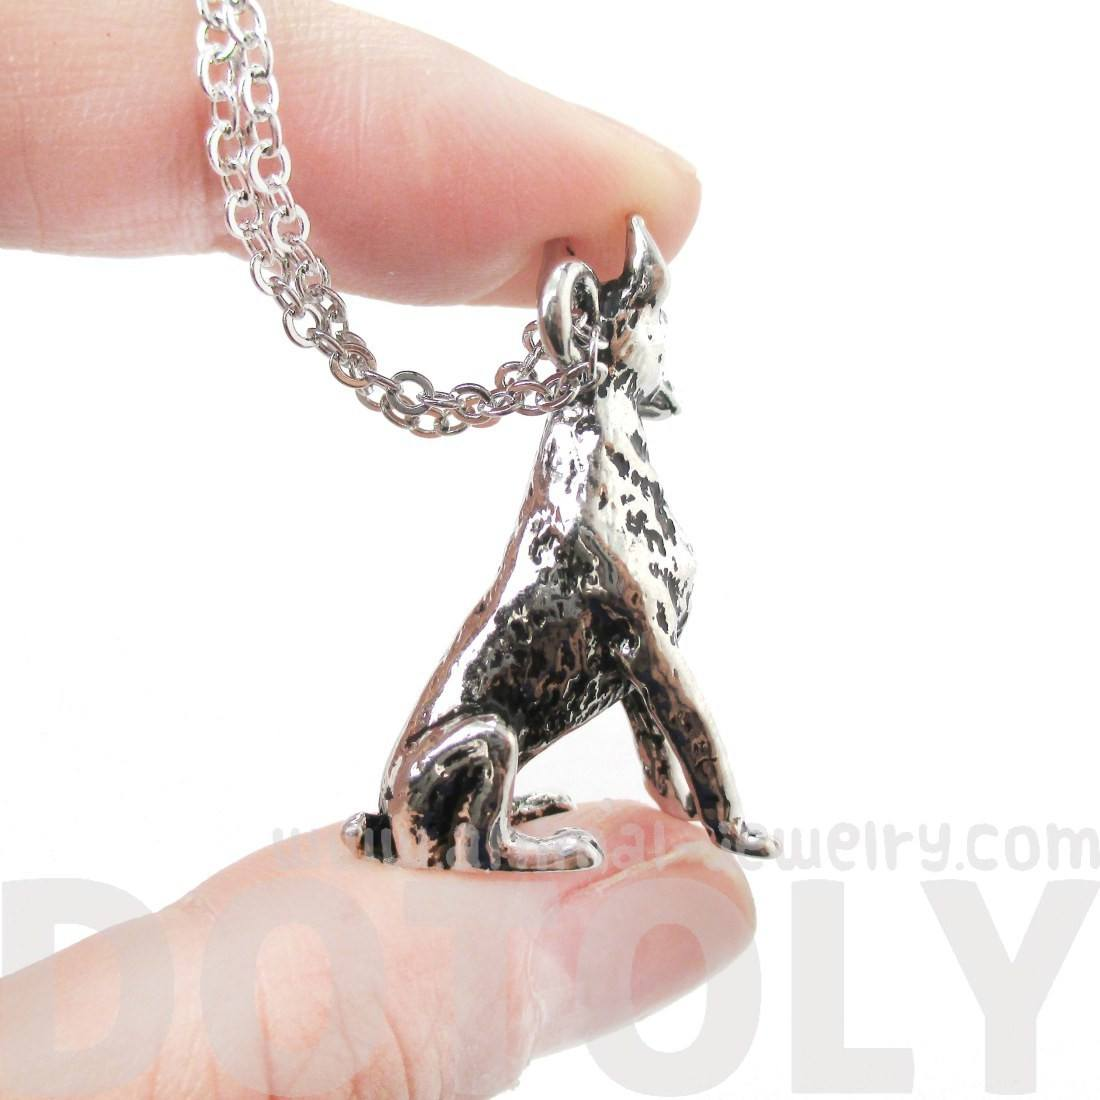 Doberman Pinscher Puppy Dog Shaped Pendant Necklace in Shiny Silver